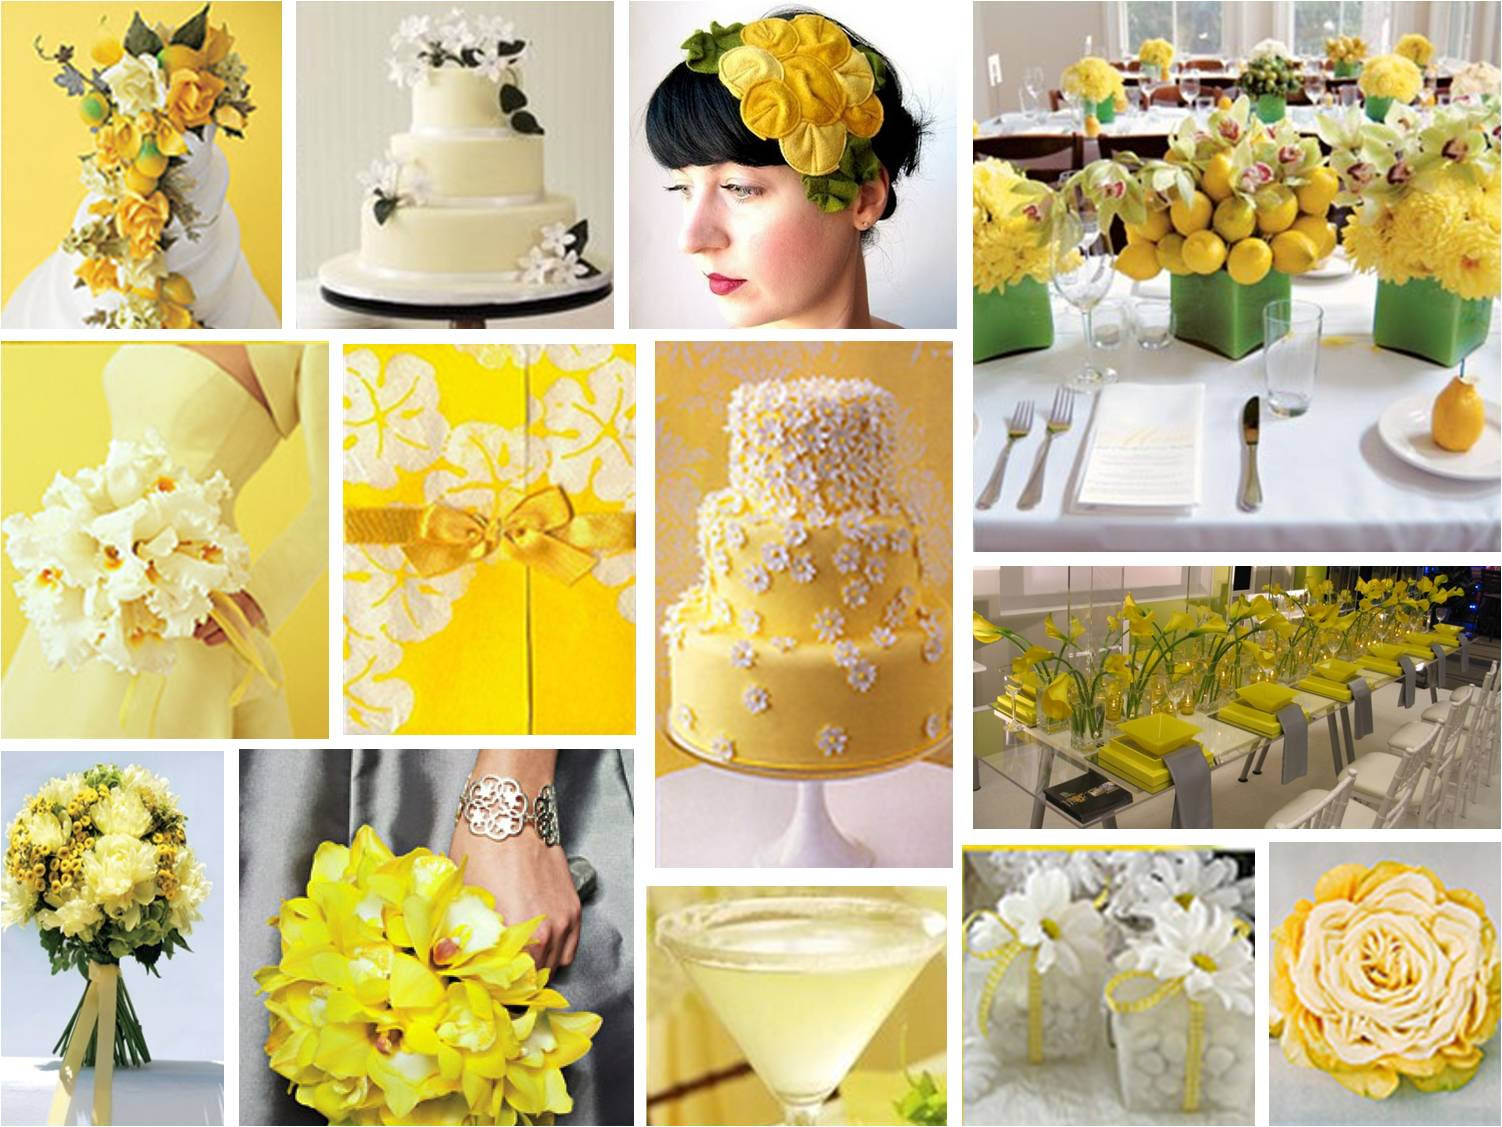 Yellow wedding centerpieces ideas pictures wedding decorations yellow wedding centerpieces ideas mightylinksfo